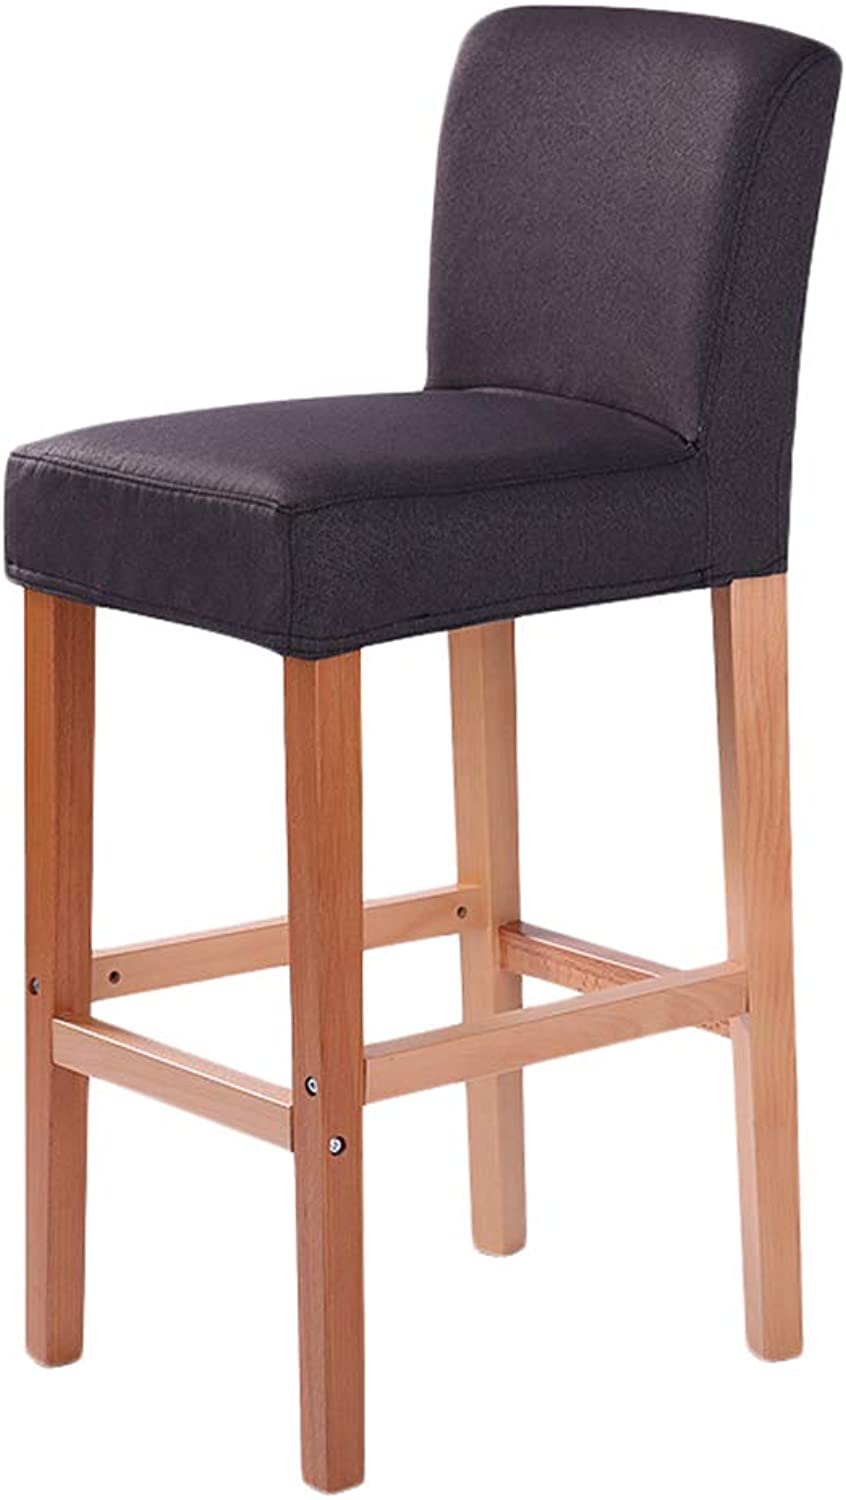 LIQICAI Bar Stool Cotton and Linen Wooden High Legs with Natural Finishes Frame 65 75cm Seat Height, 8 colors Optional (color   Dark Grey, Size   42x41x103cm)